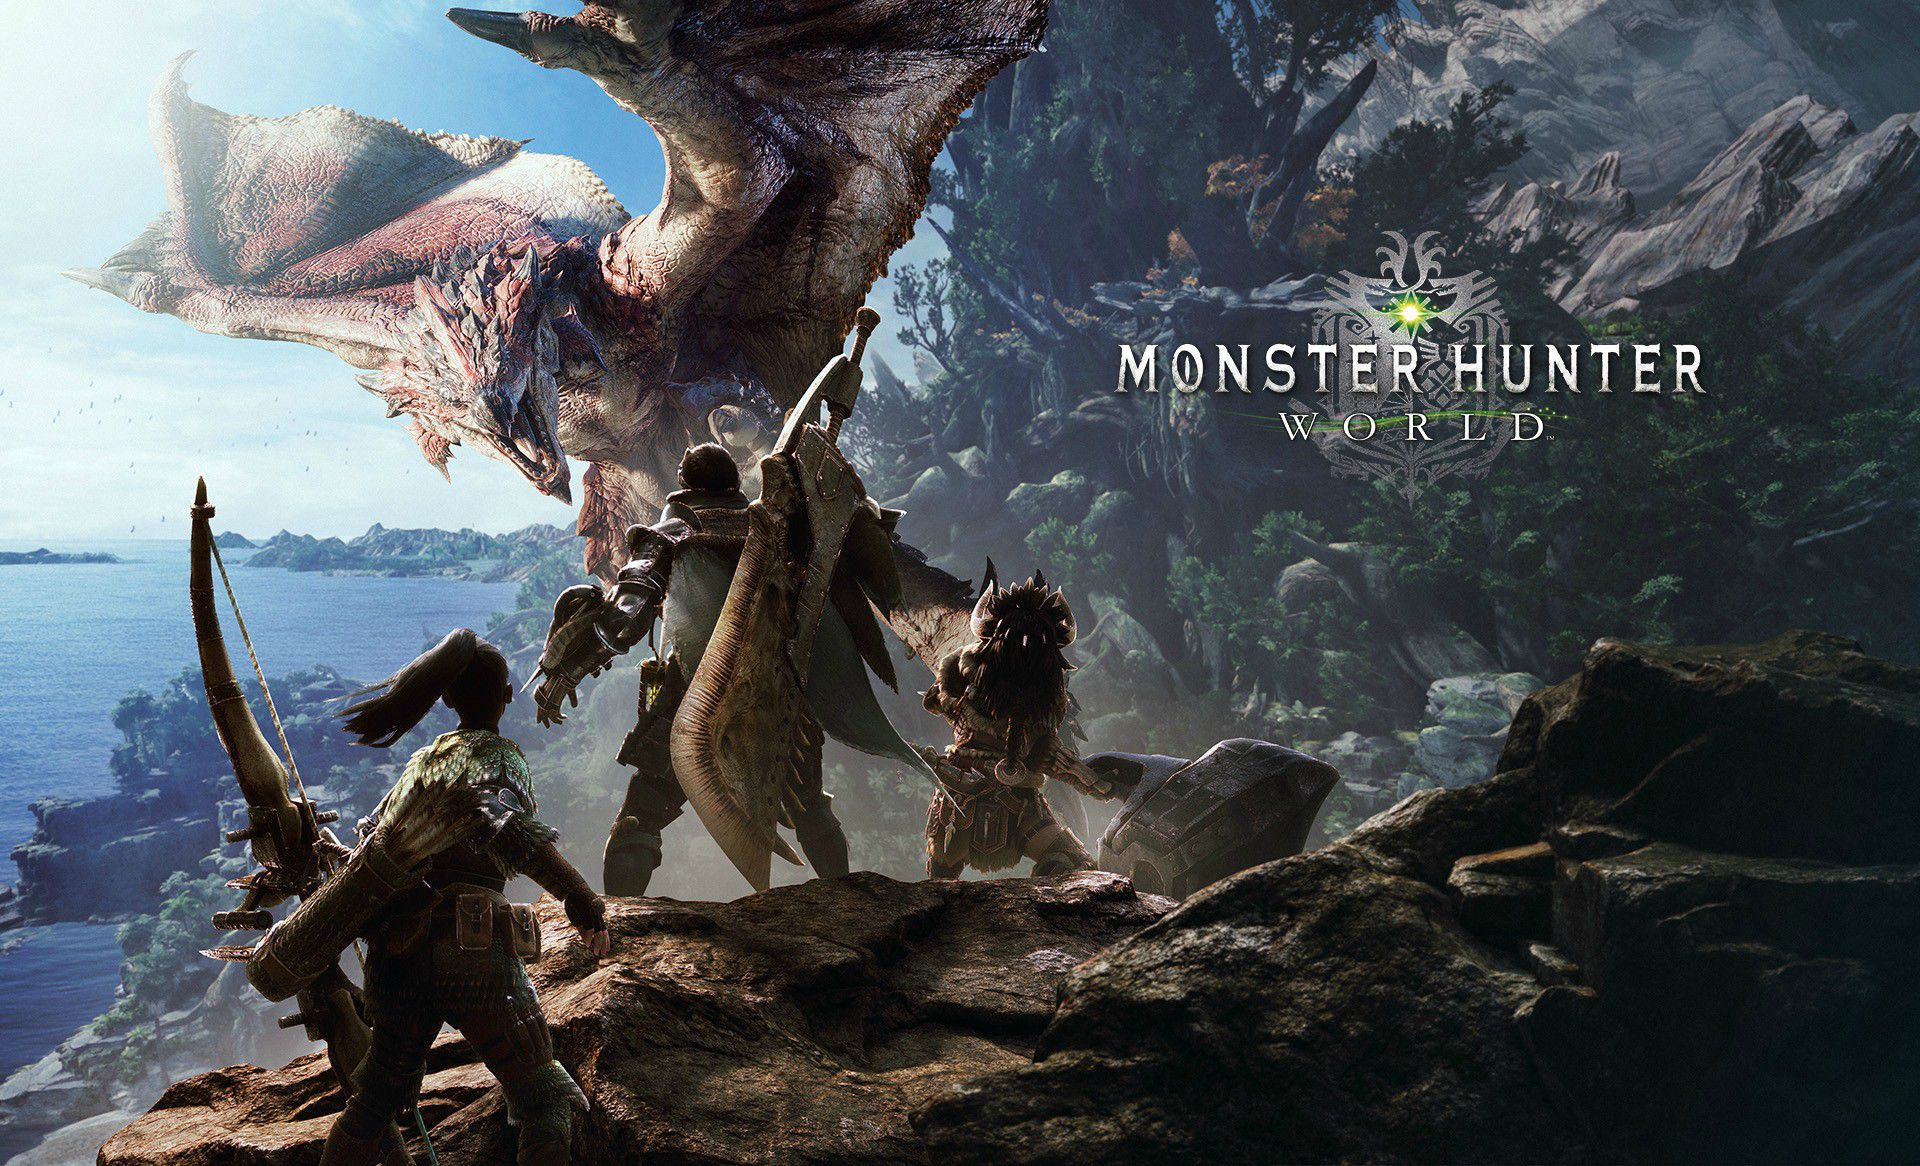 Monster Hunter World Wallpapers